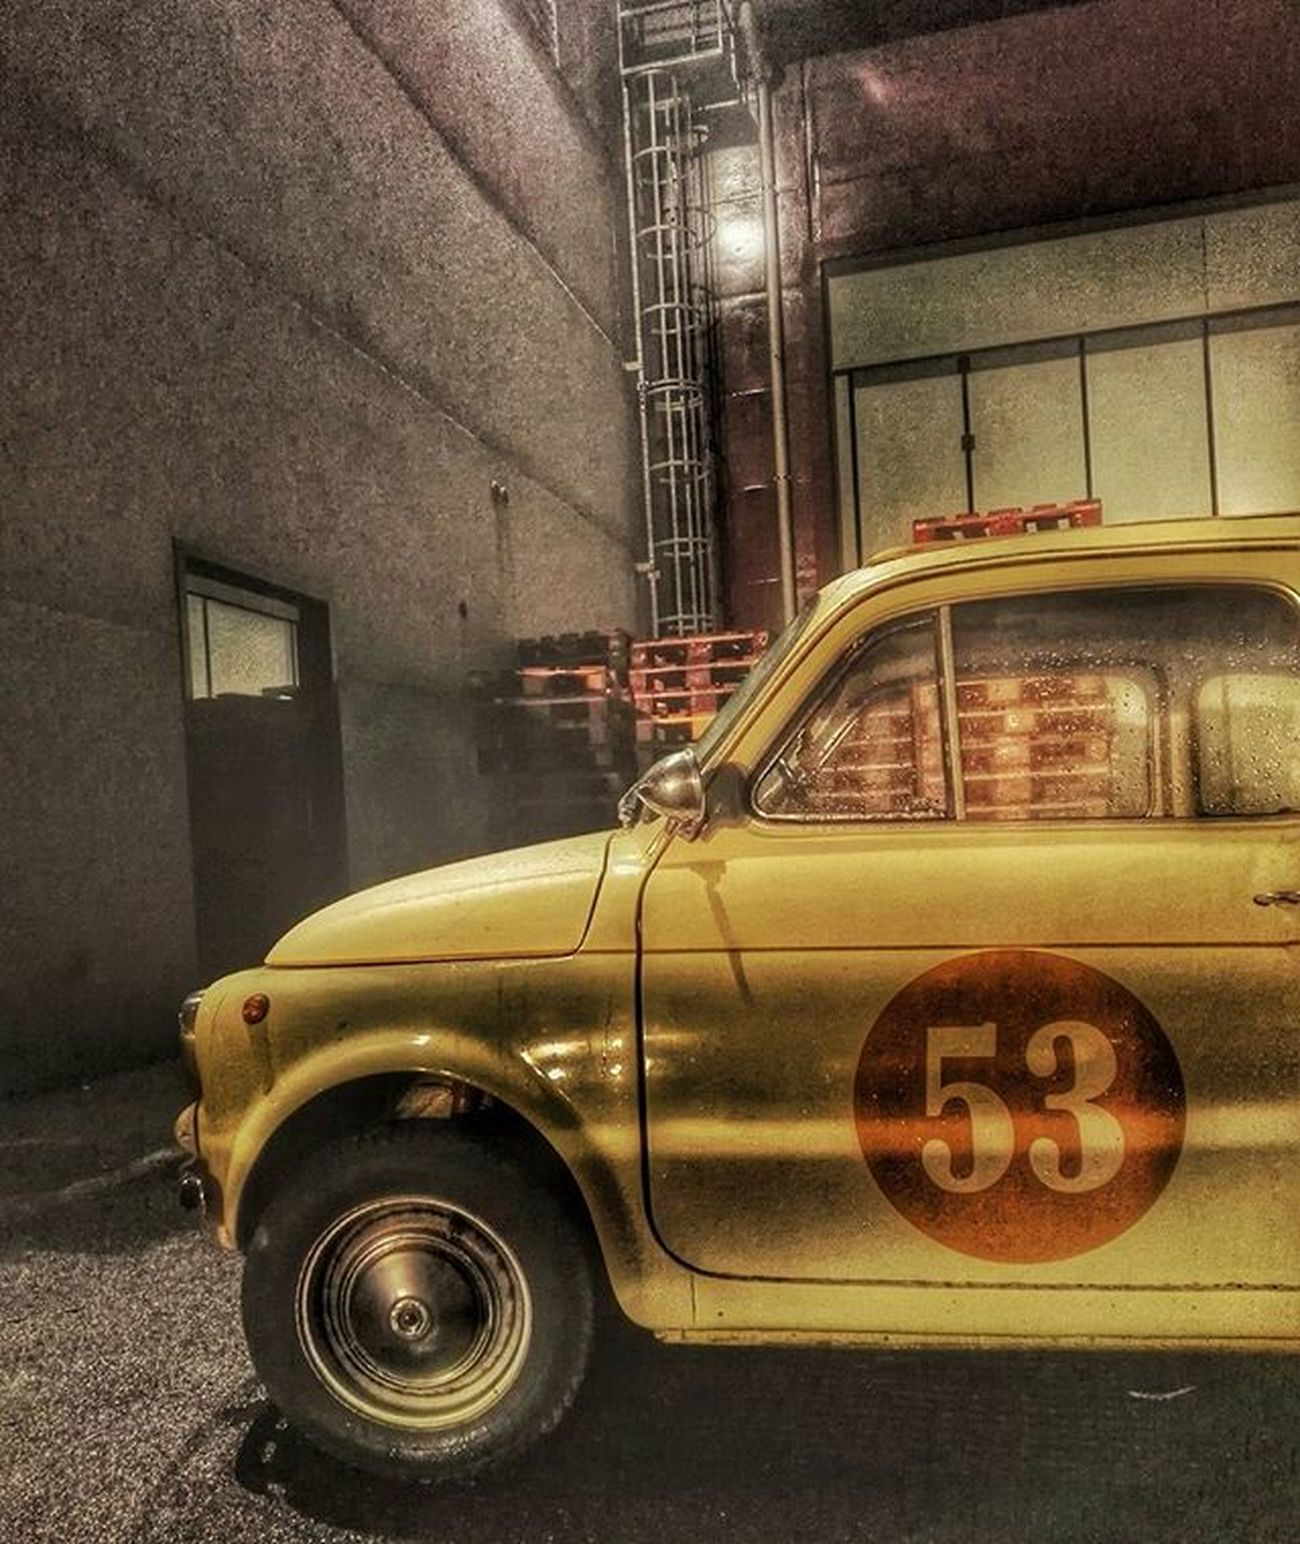 Old Car in da Port 🚗 53 500 HDR Seaport Refinery Old Livorno Ig_livorno Photography Streetphotography Ic_hdr Ic_photos